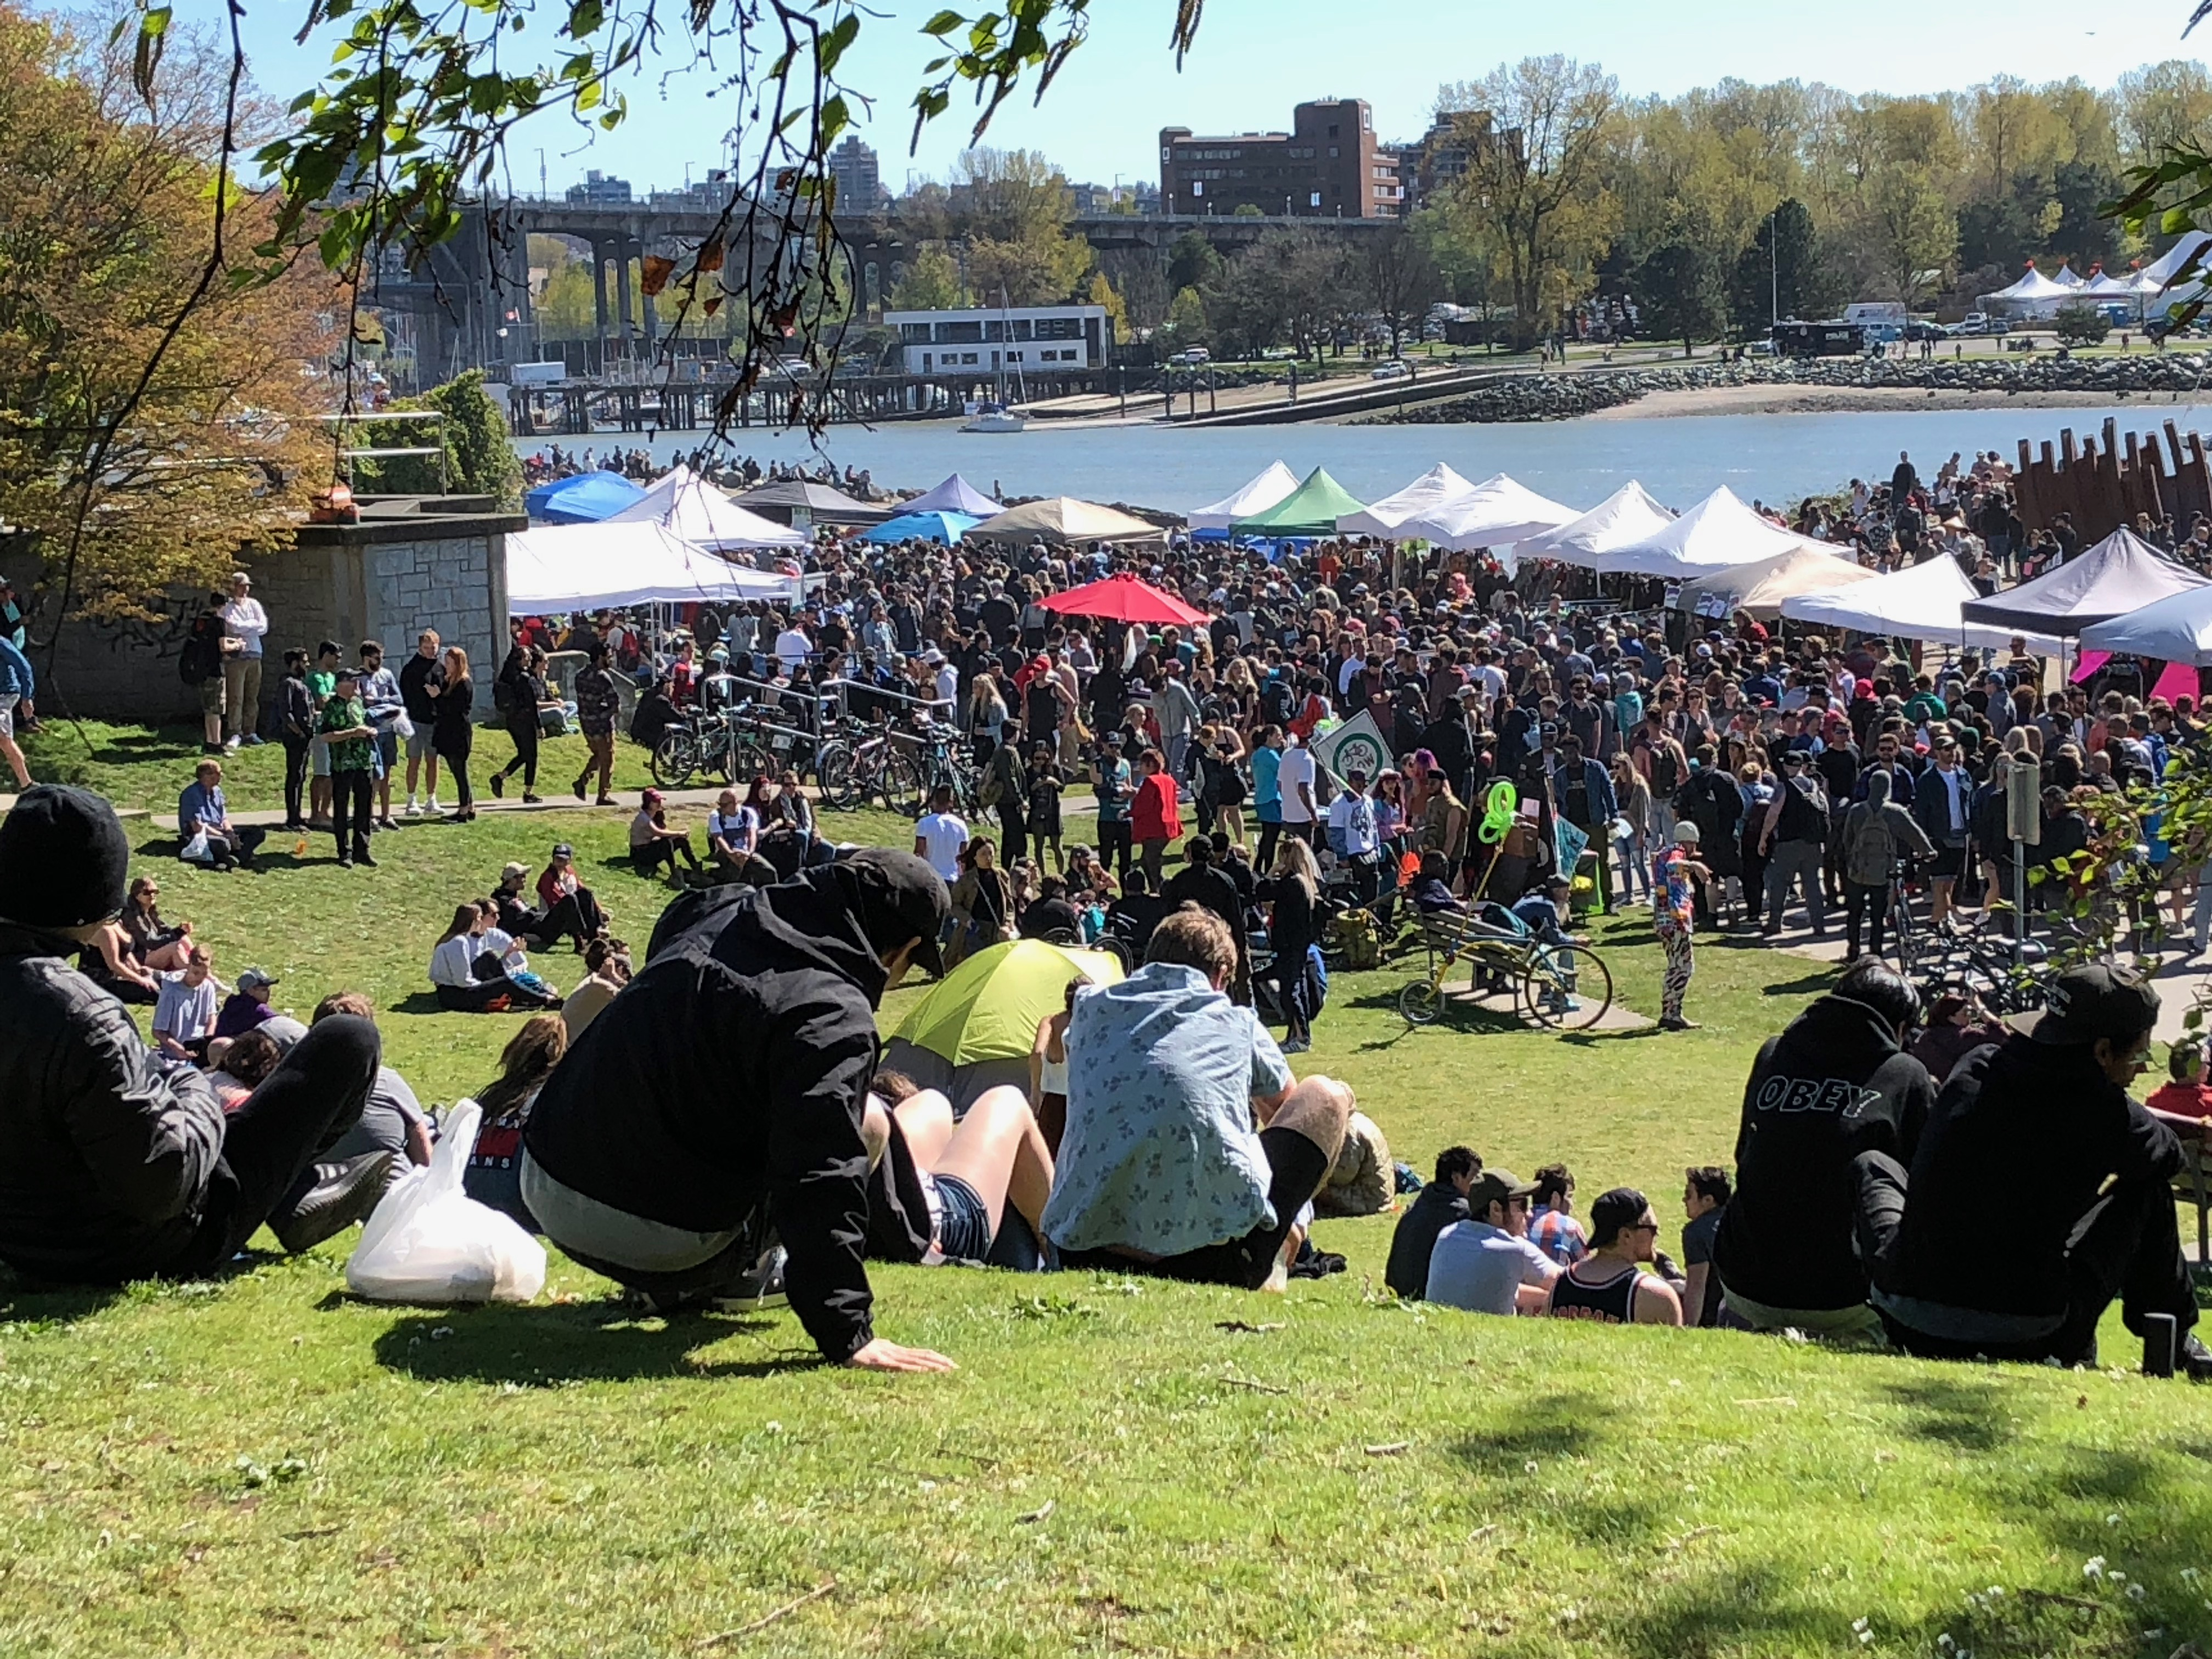 4-20 Protest